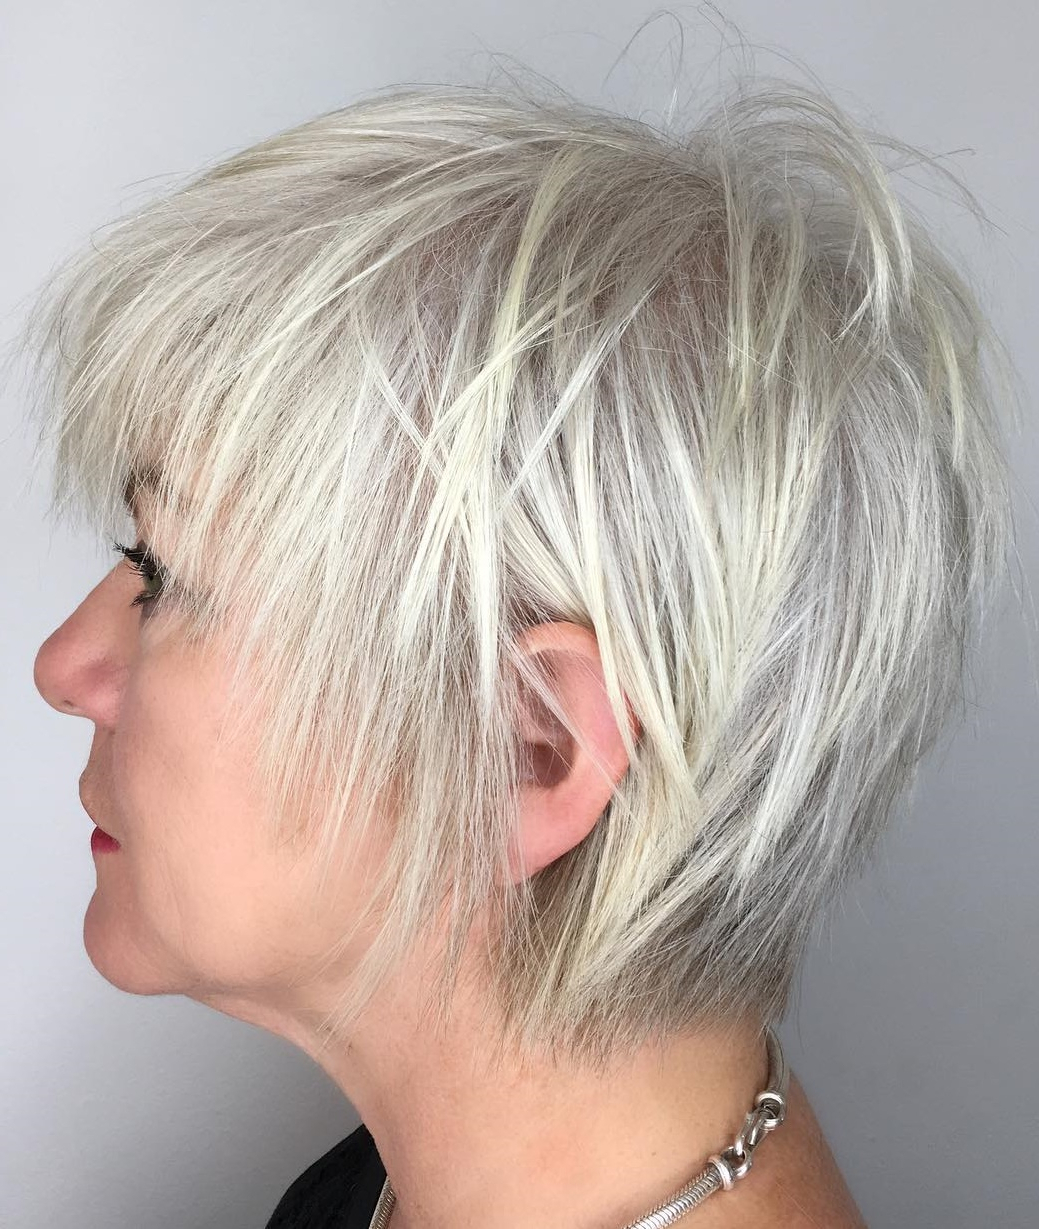 Most Recently Released Short Feathered Bob Crop Hairstyles For 60 Trendiest Hairstyles And Haircuts For Women Over 50 In (View 15 of 20)